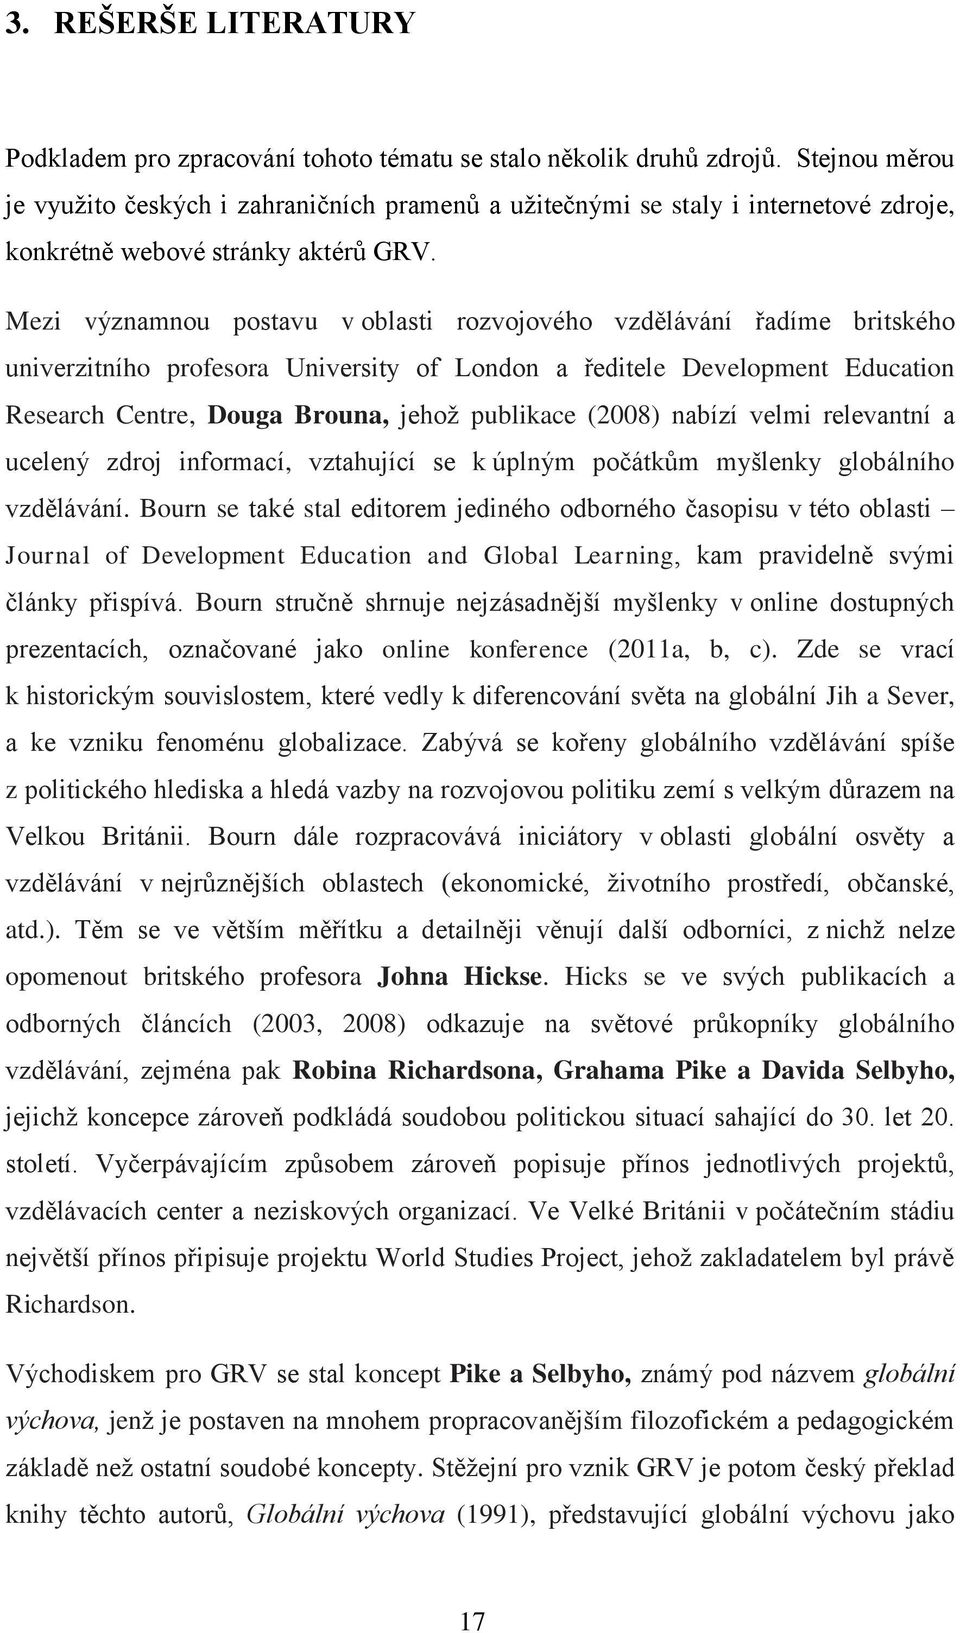 Mezi významnou postavu v oblasti rozvojového vzdělávání řadíme britského univerzitního profesora University of London a ředitele Development Education Research Centre, Douga Brouna, jehož publikace